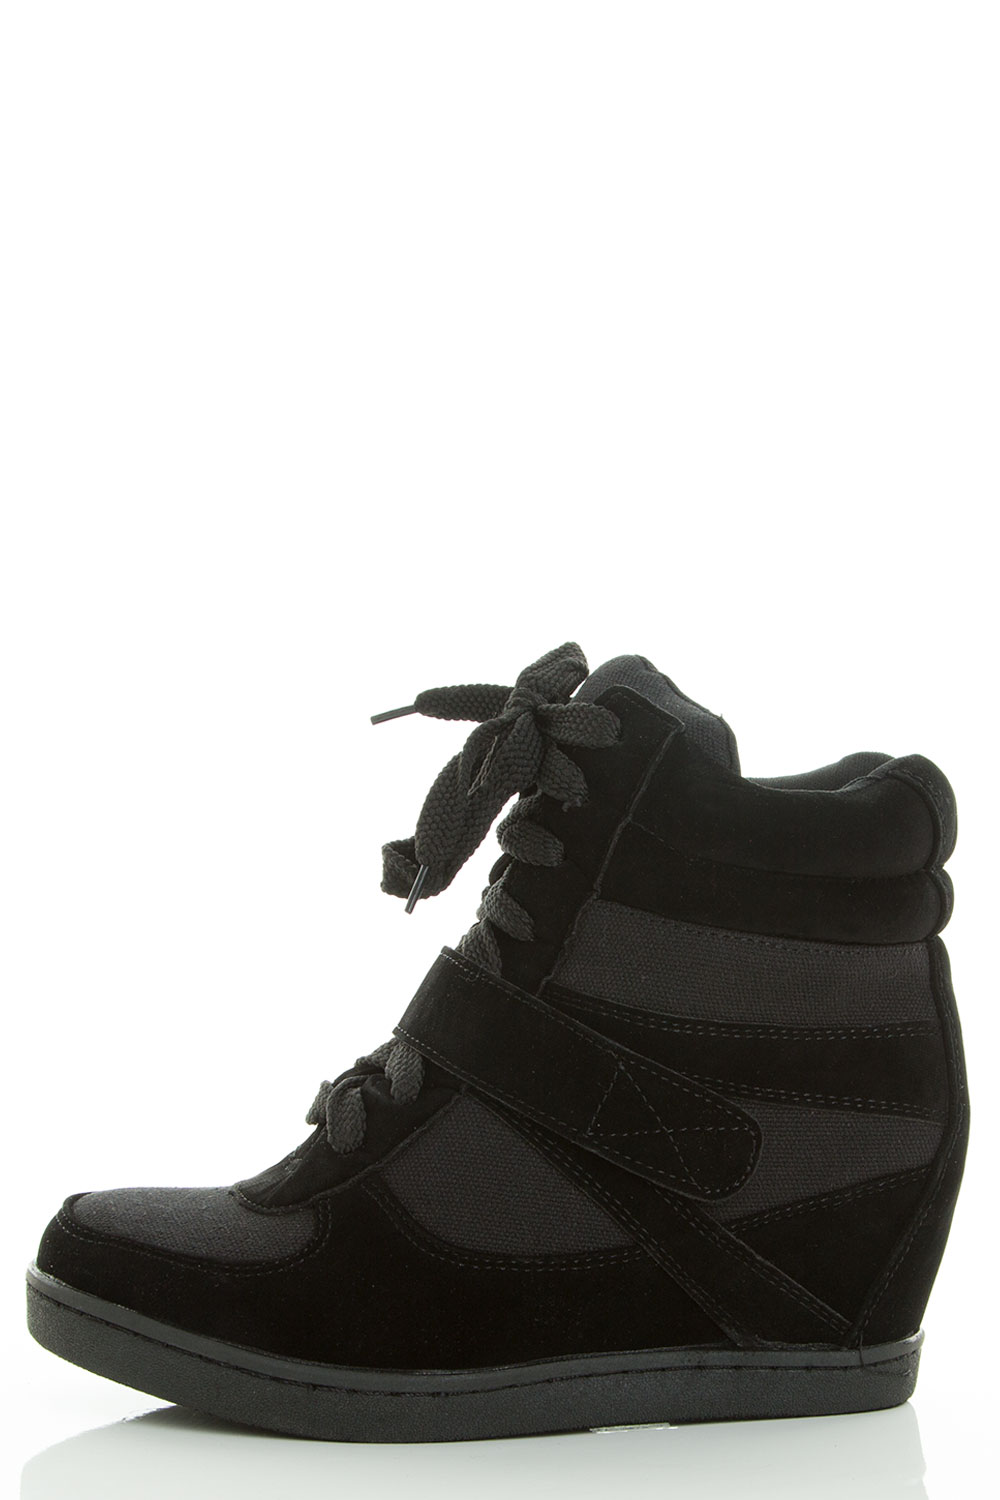 High Top Lace Up Velcro Medium High Hidden Wedge Sneaker Booties